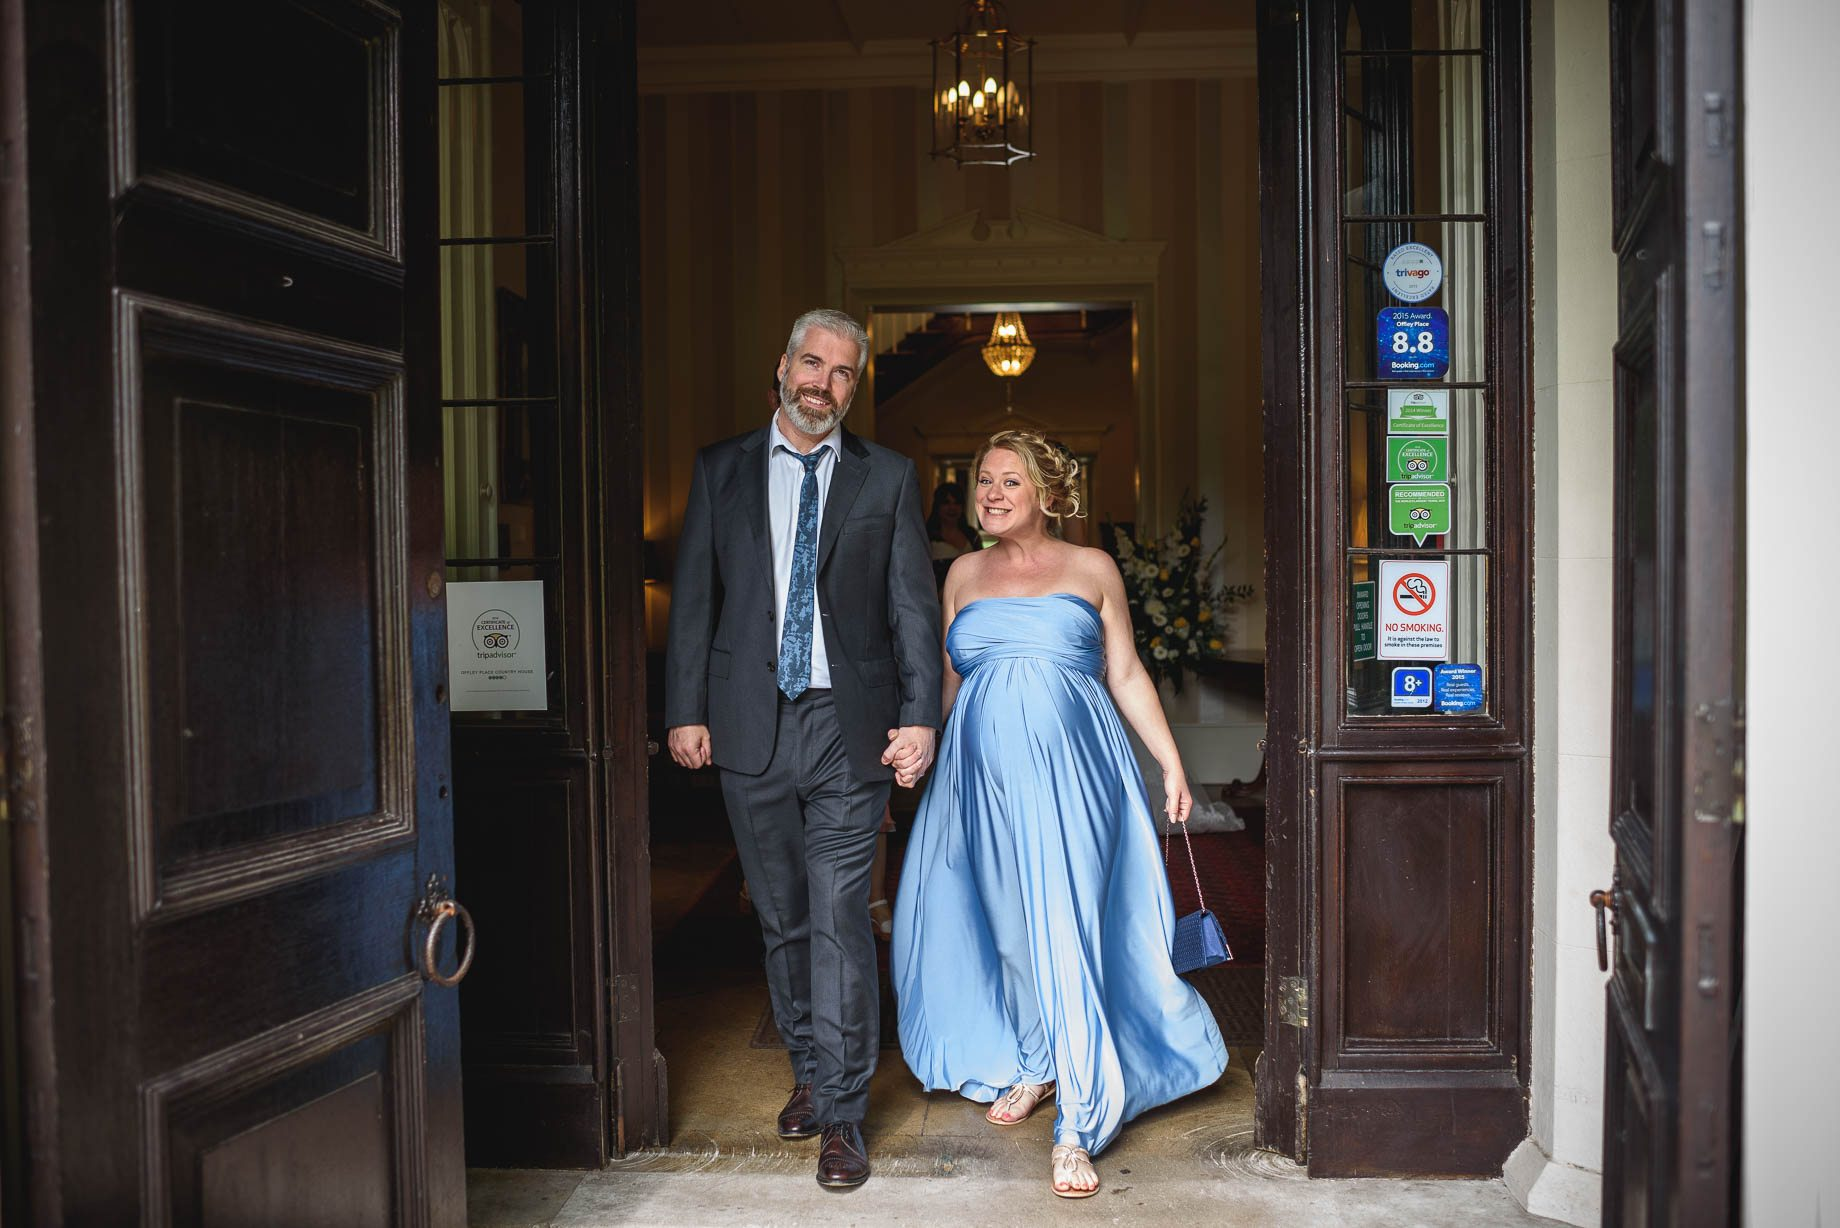 Hertfordshire wedding photography - Sarah and Stephen by Guy Collier Photography (107 of 161)